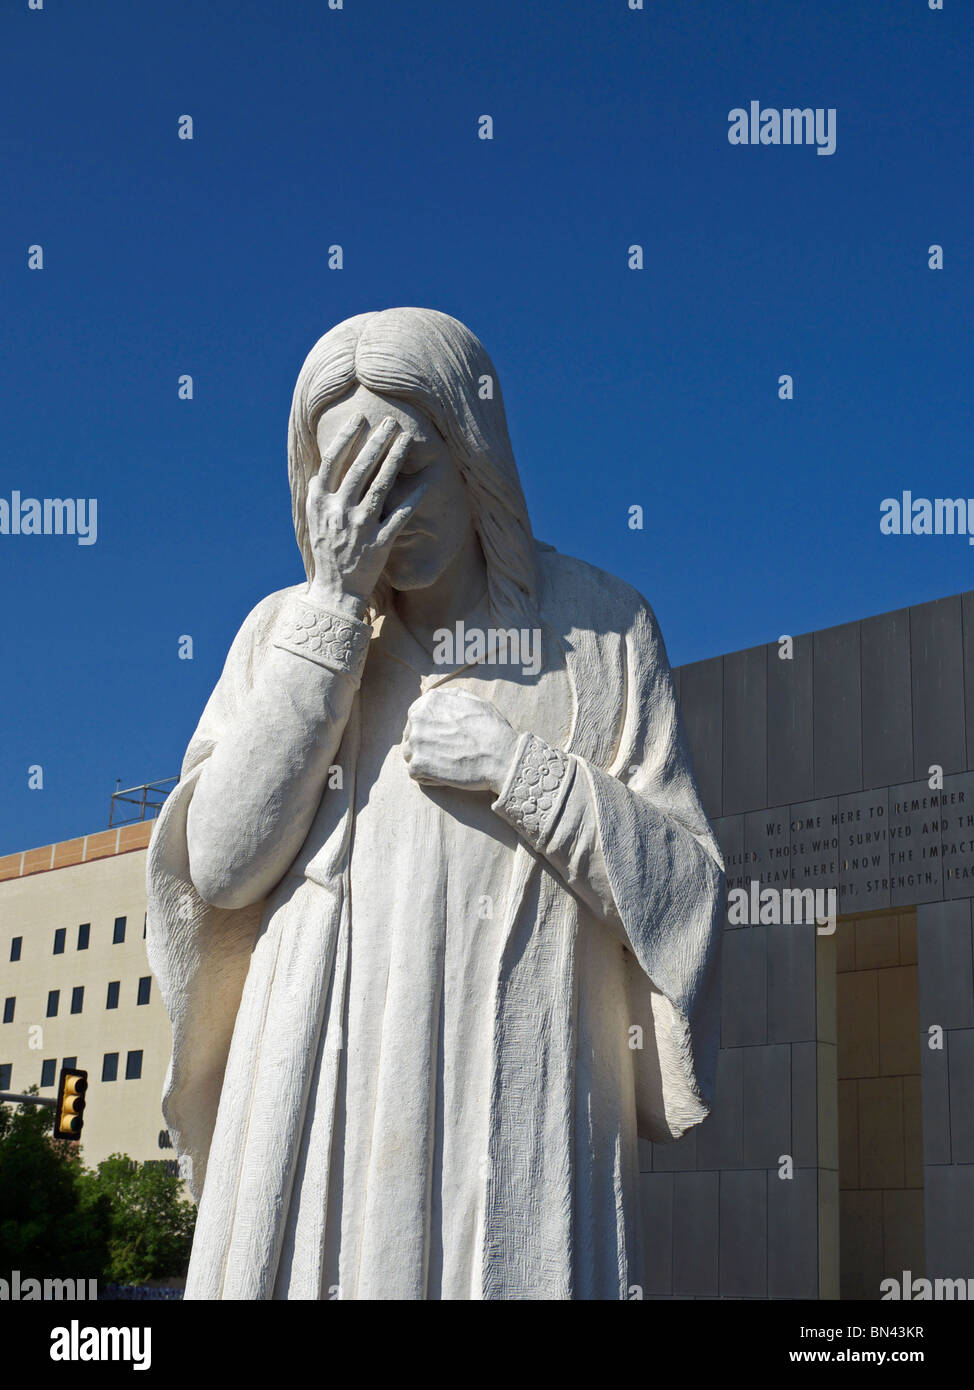 The sculpture entitled 'And Jesus Wept' adjacent to the Oklahoma City National Memorial. Stock Photo